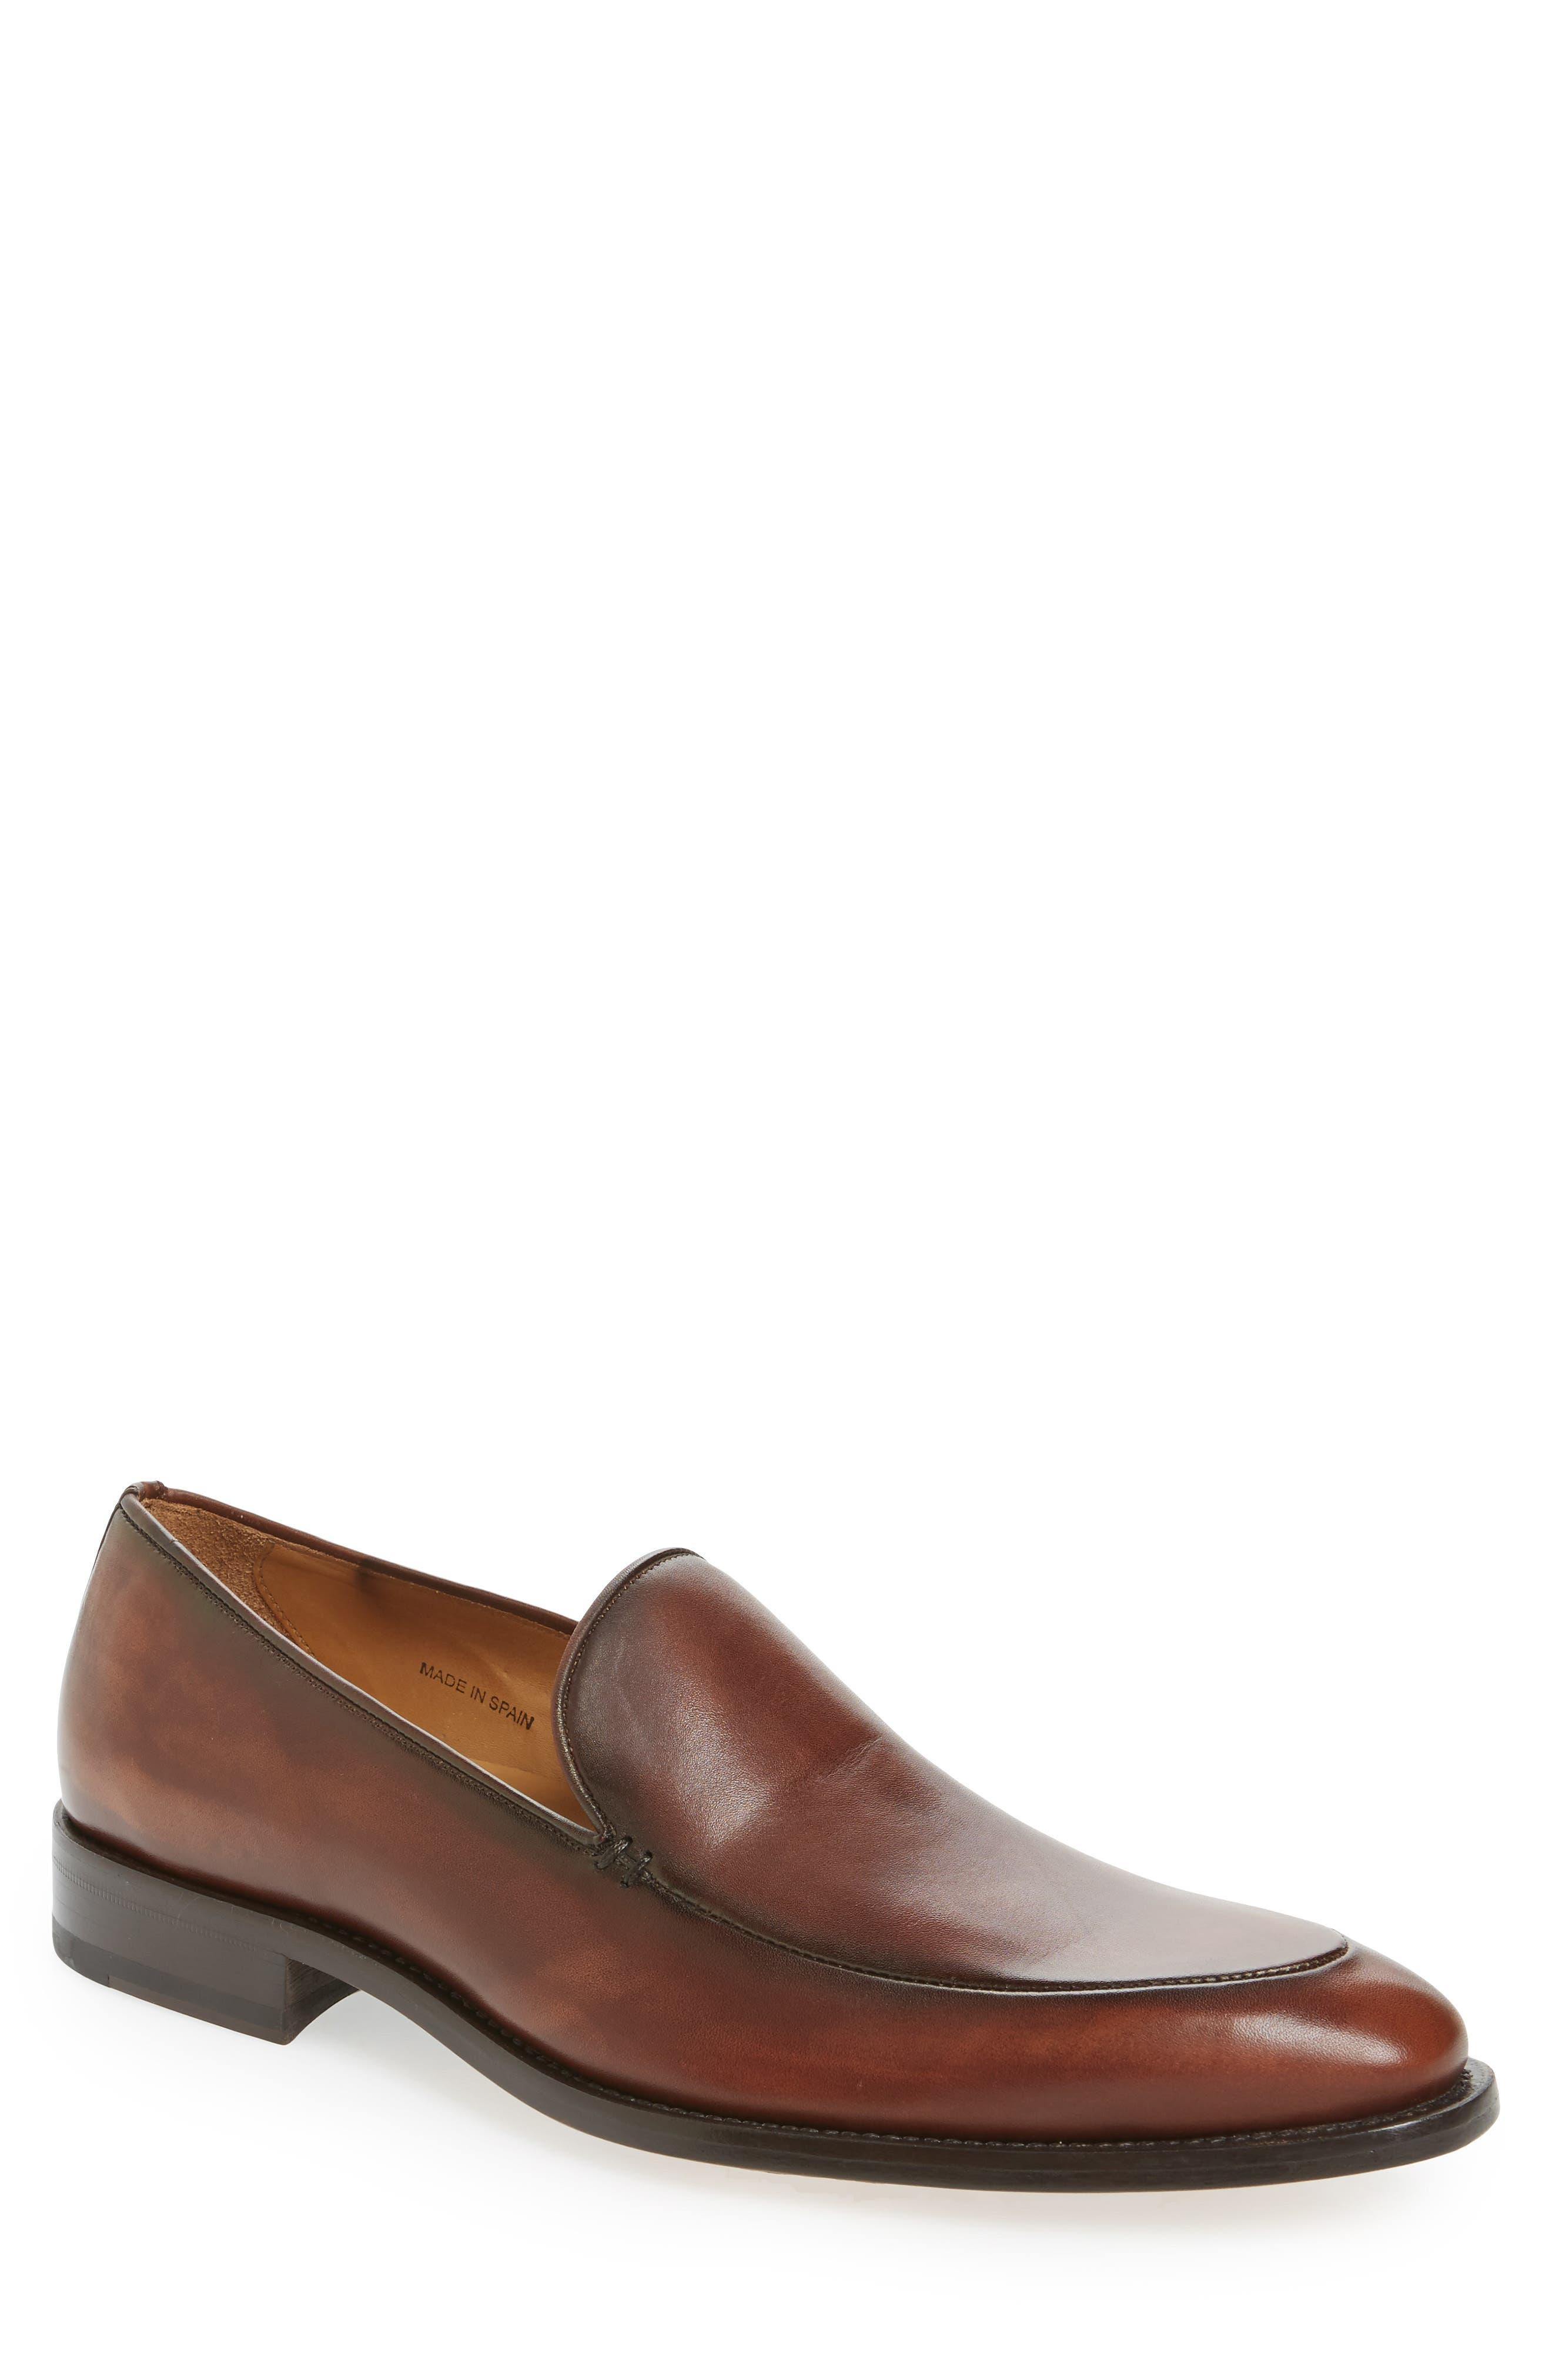 Strauss Venetian Loafer,                             Main thumbnail 2, color,